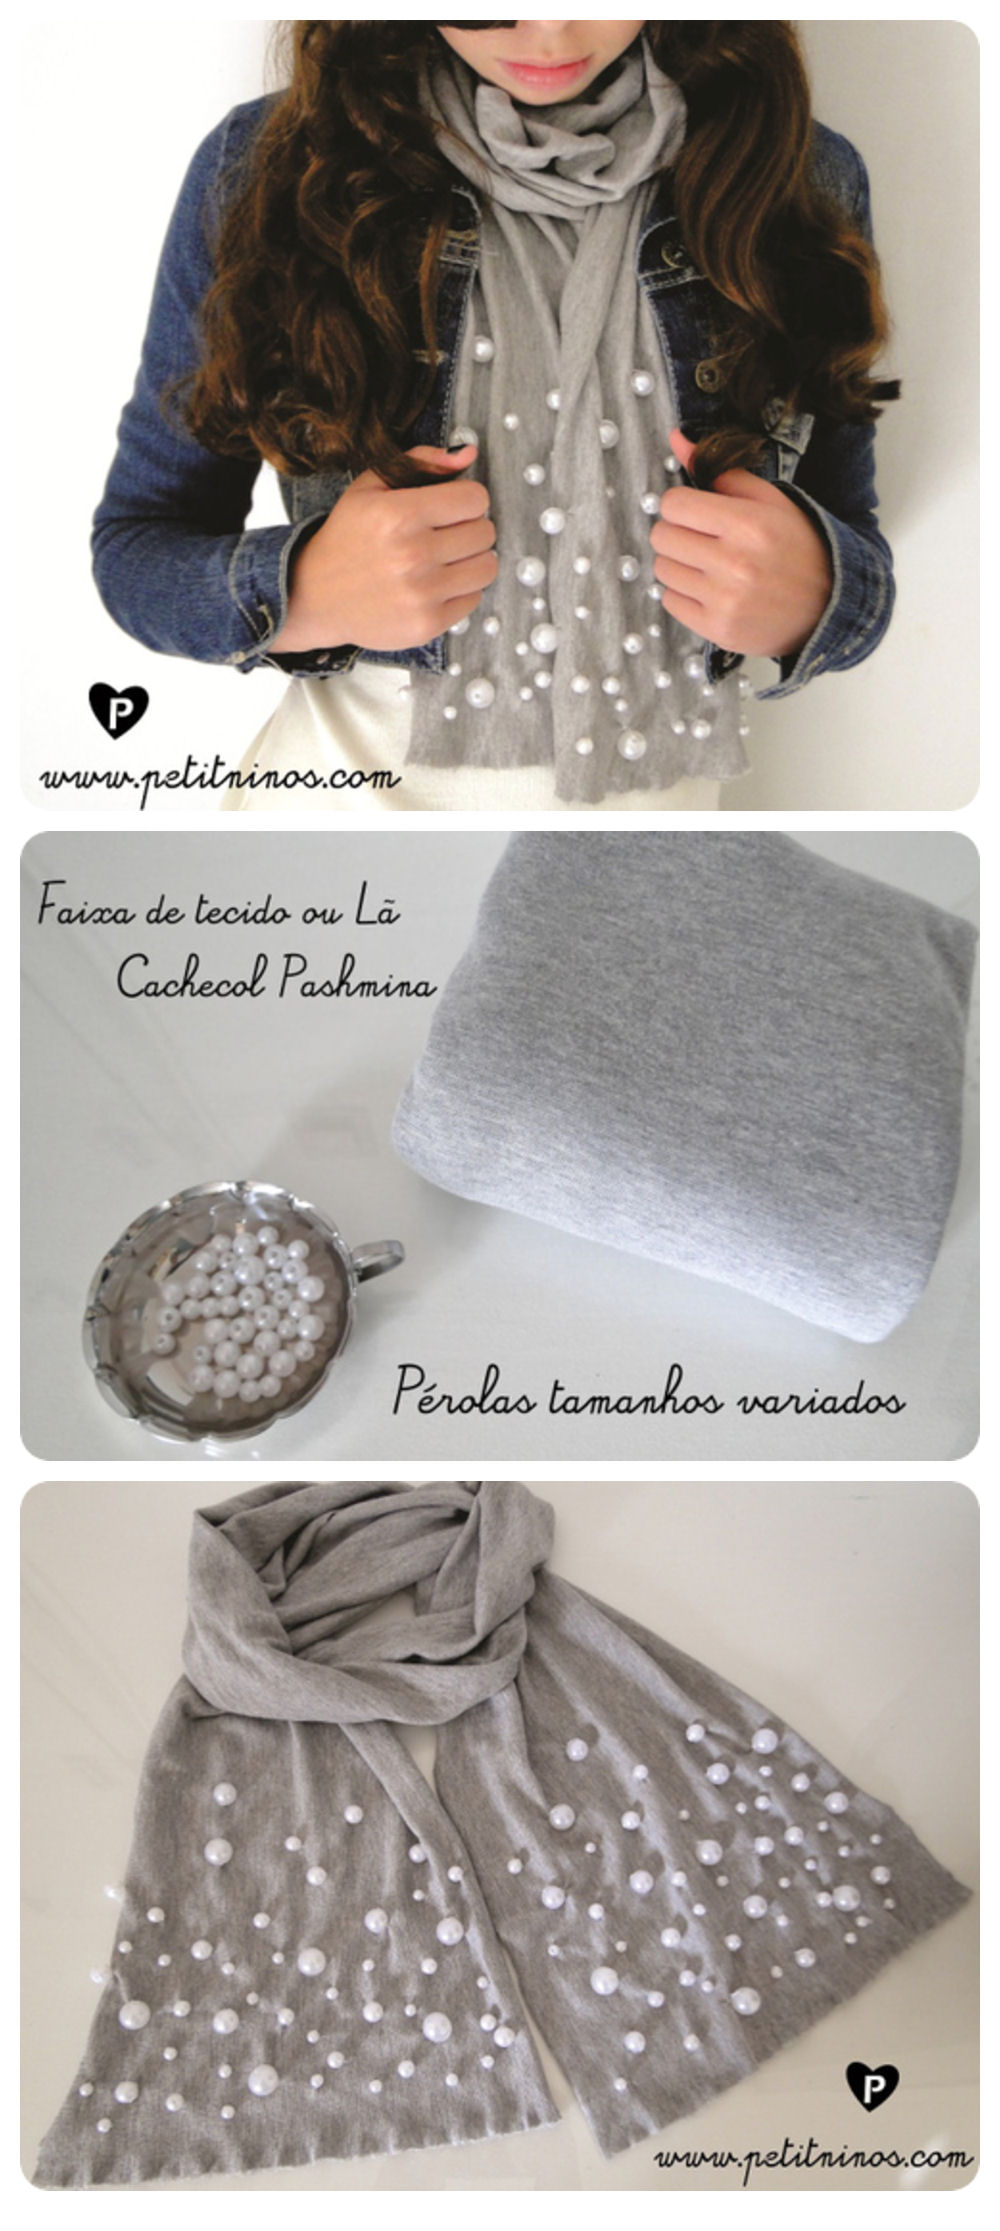 How To Sew Beads Onto Fabric : beads, fabric, Beaded, Clothing, Embellishment, Ideas